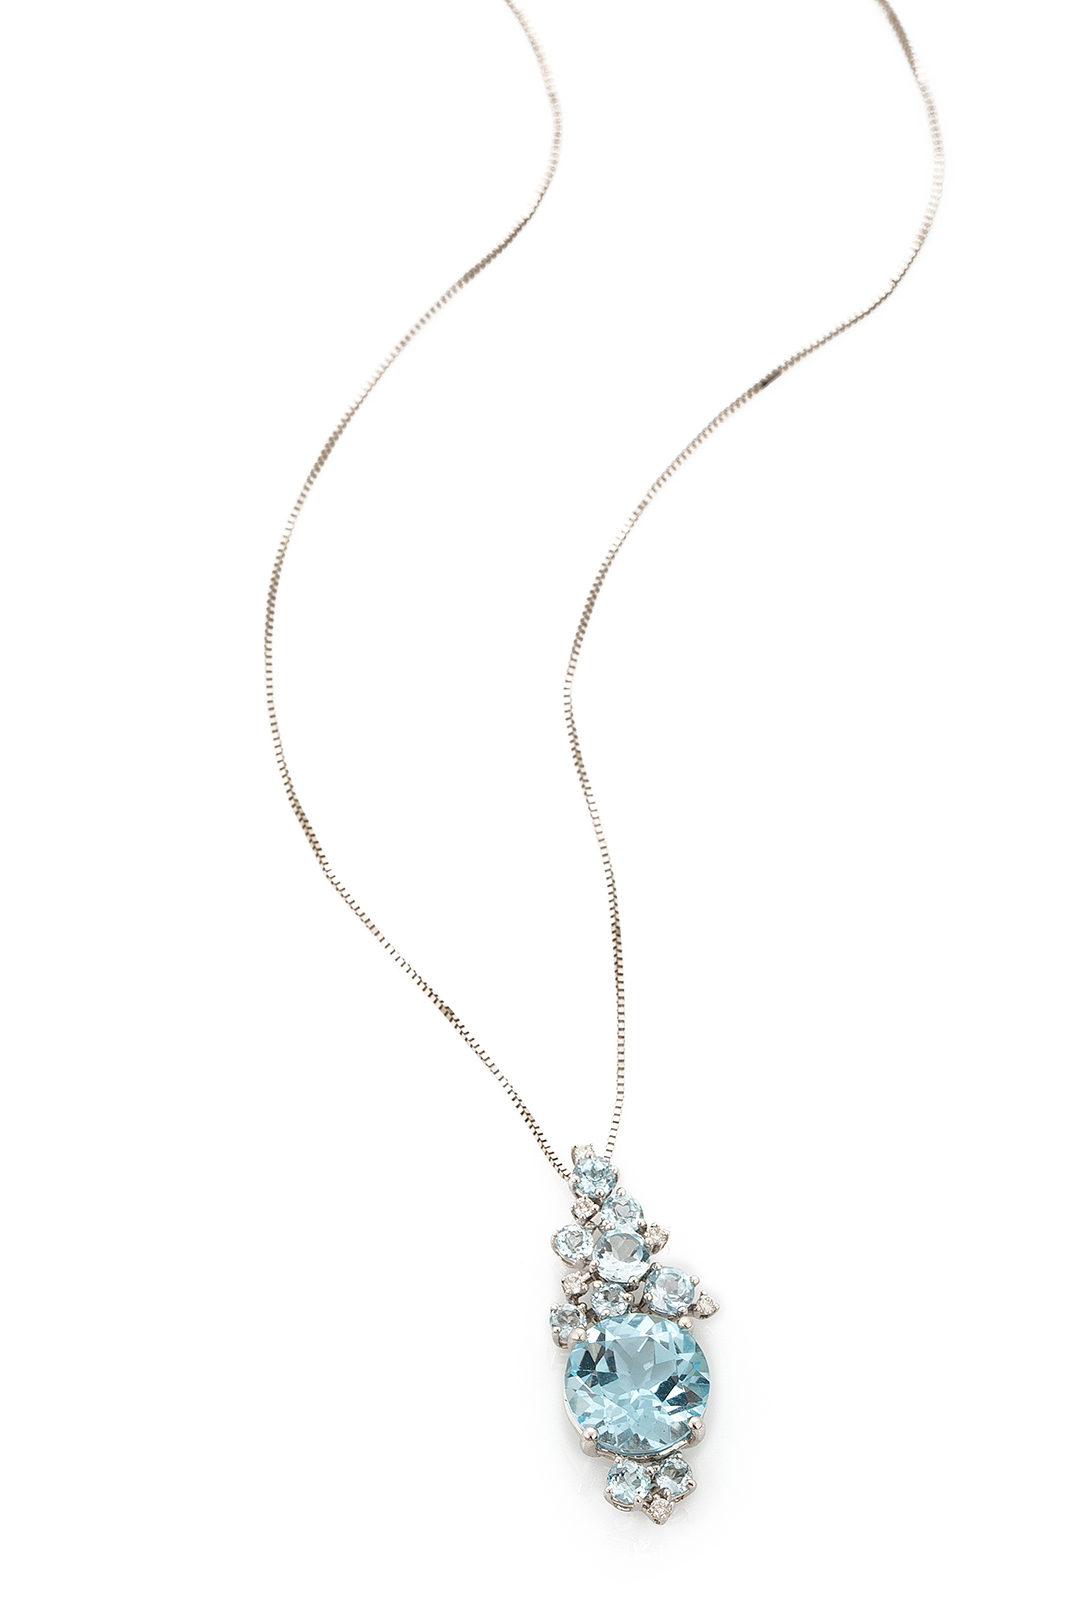 BLUE TOPAZ LOVE AND DIAMOND NECKLACE